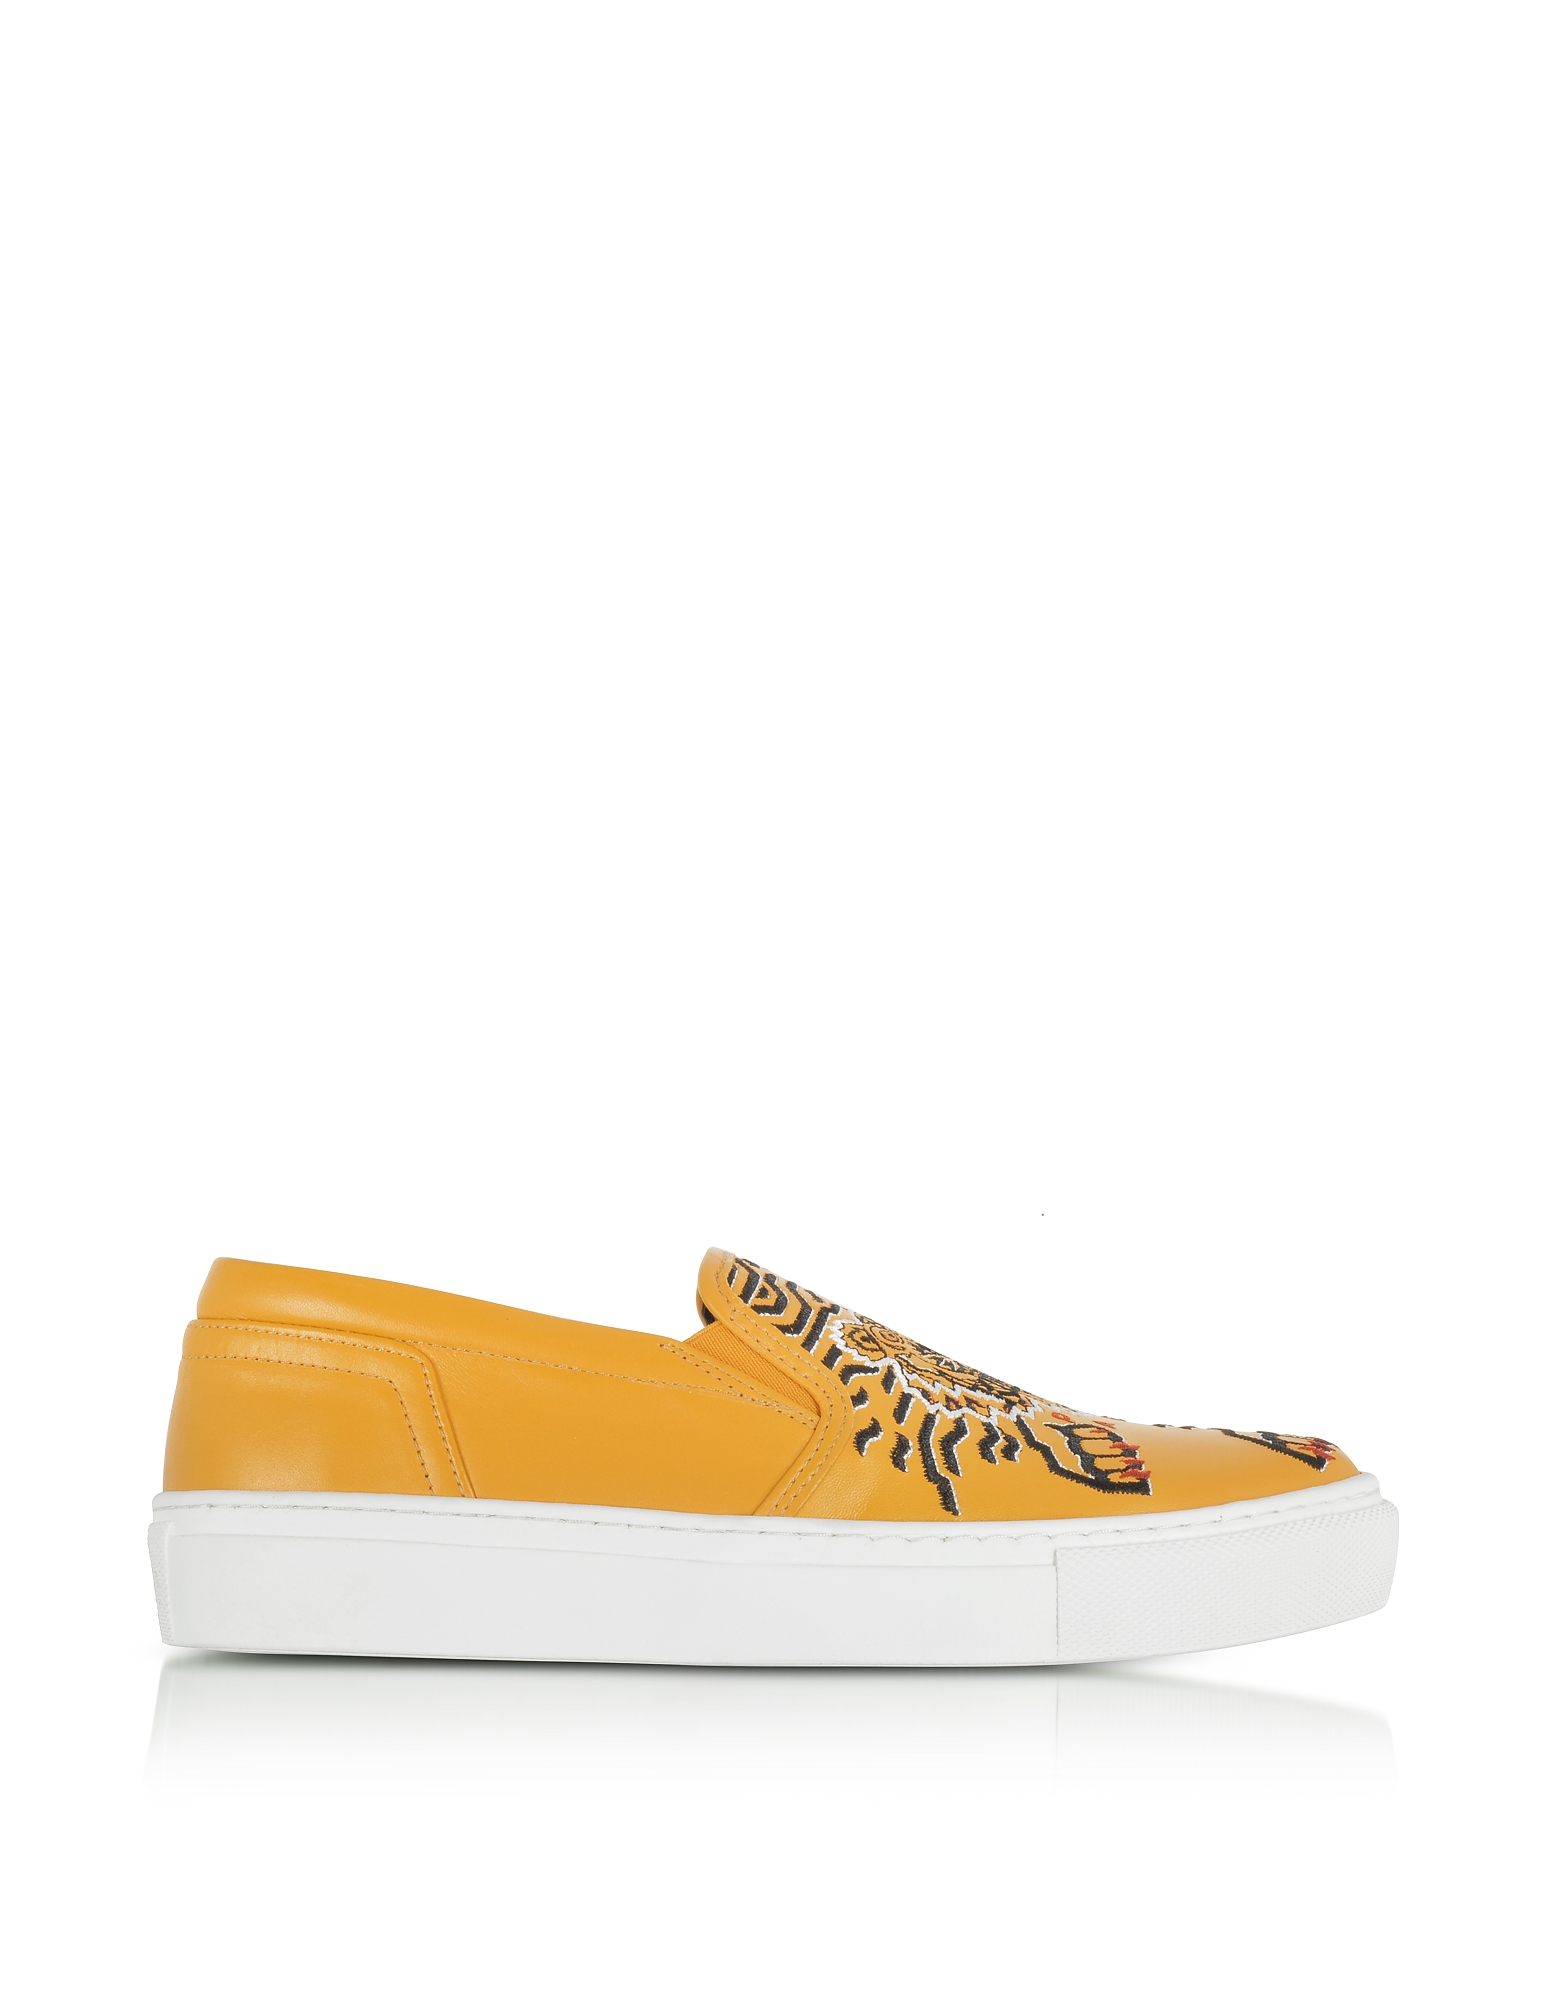 Kenzo Shoes, Yellow Leather Tiger Slip on Sneakers